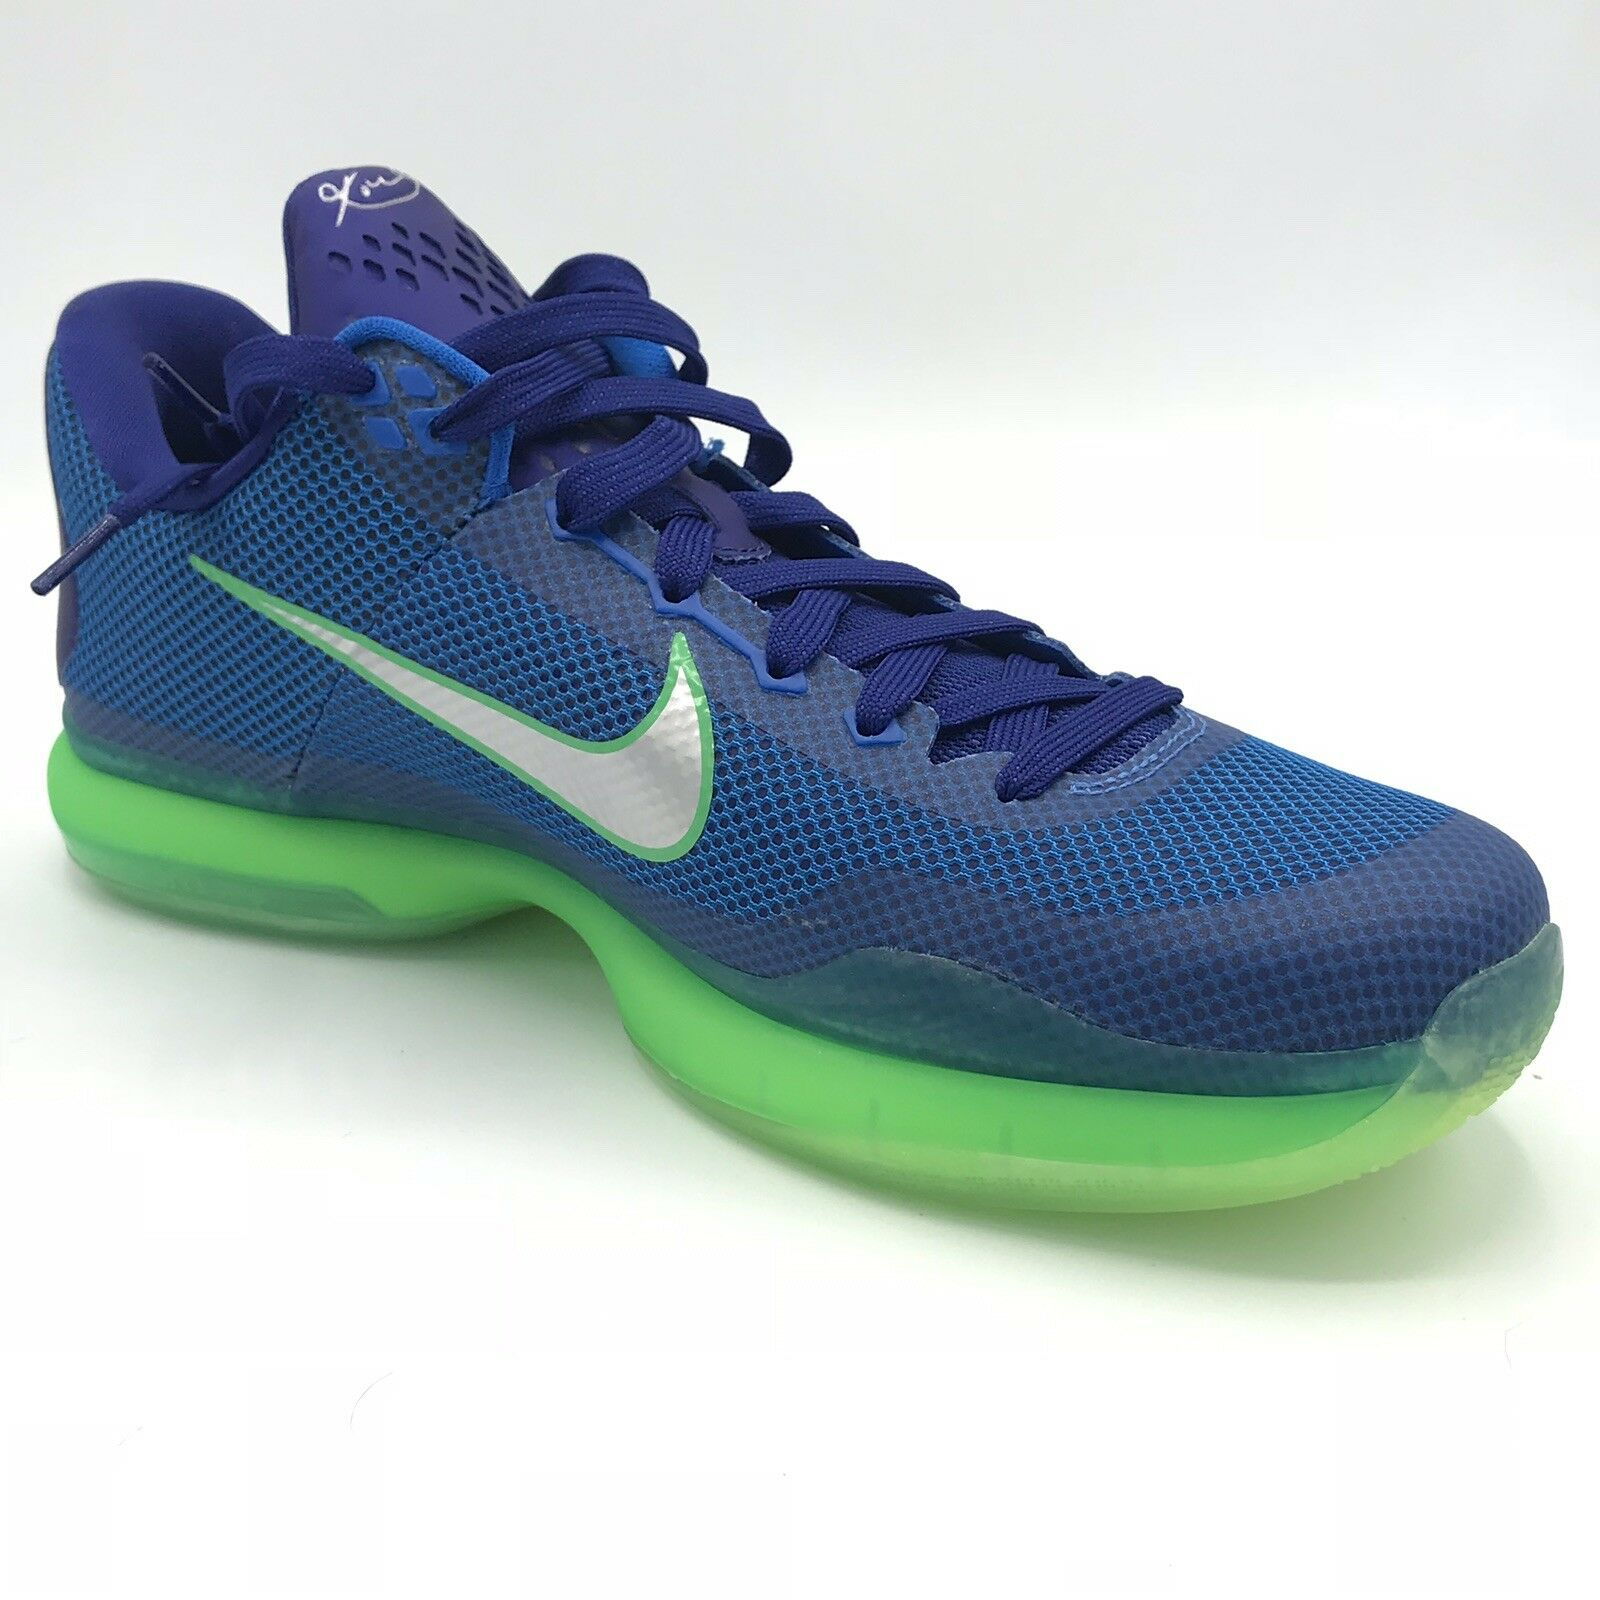 cd45c75553 Nike Men Kobe X 705317-402 Emerald City Basketball shoes bluee Sz 10.5 New  In